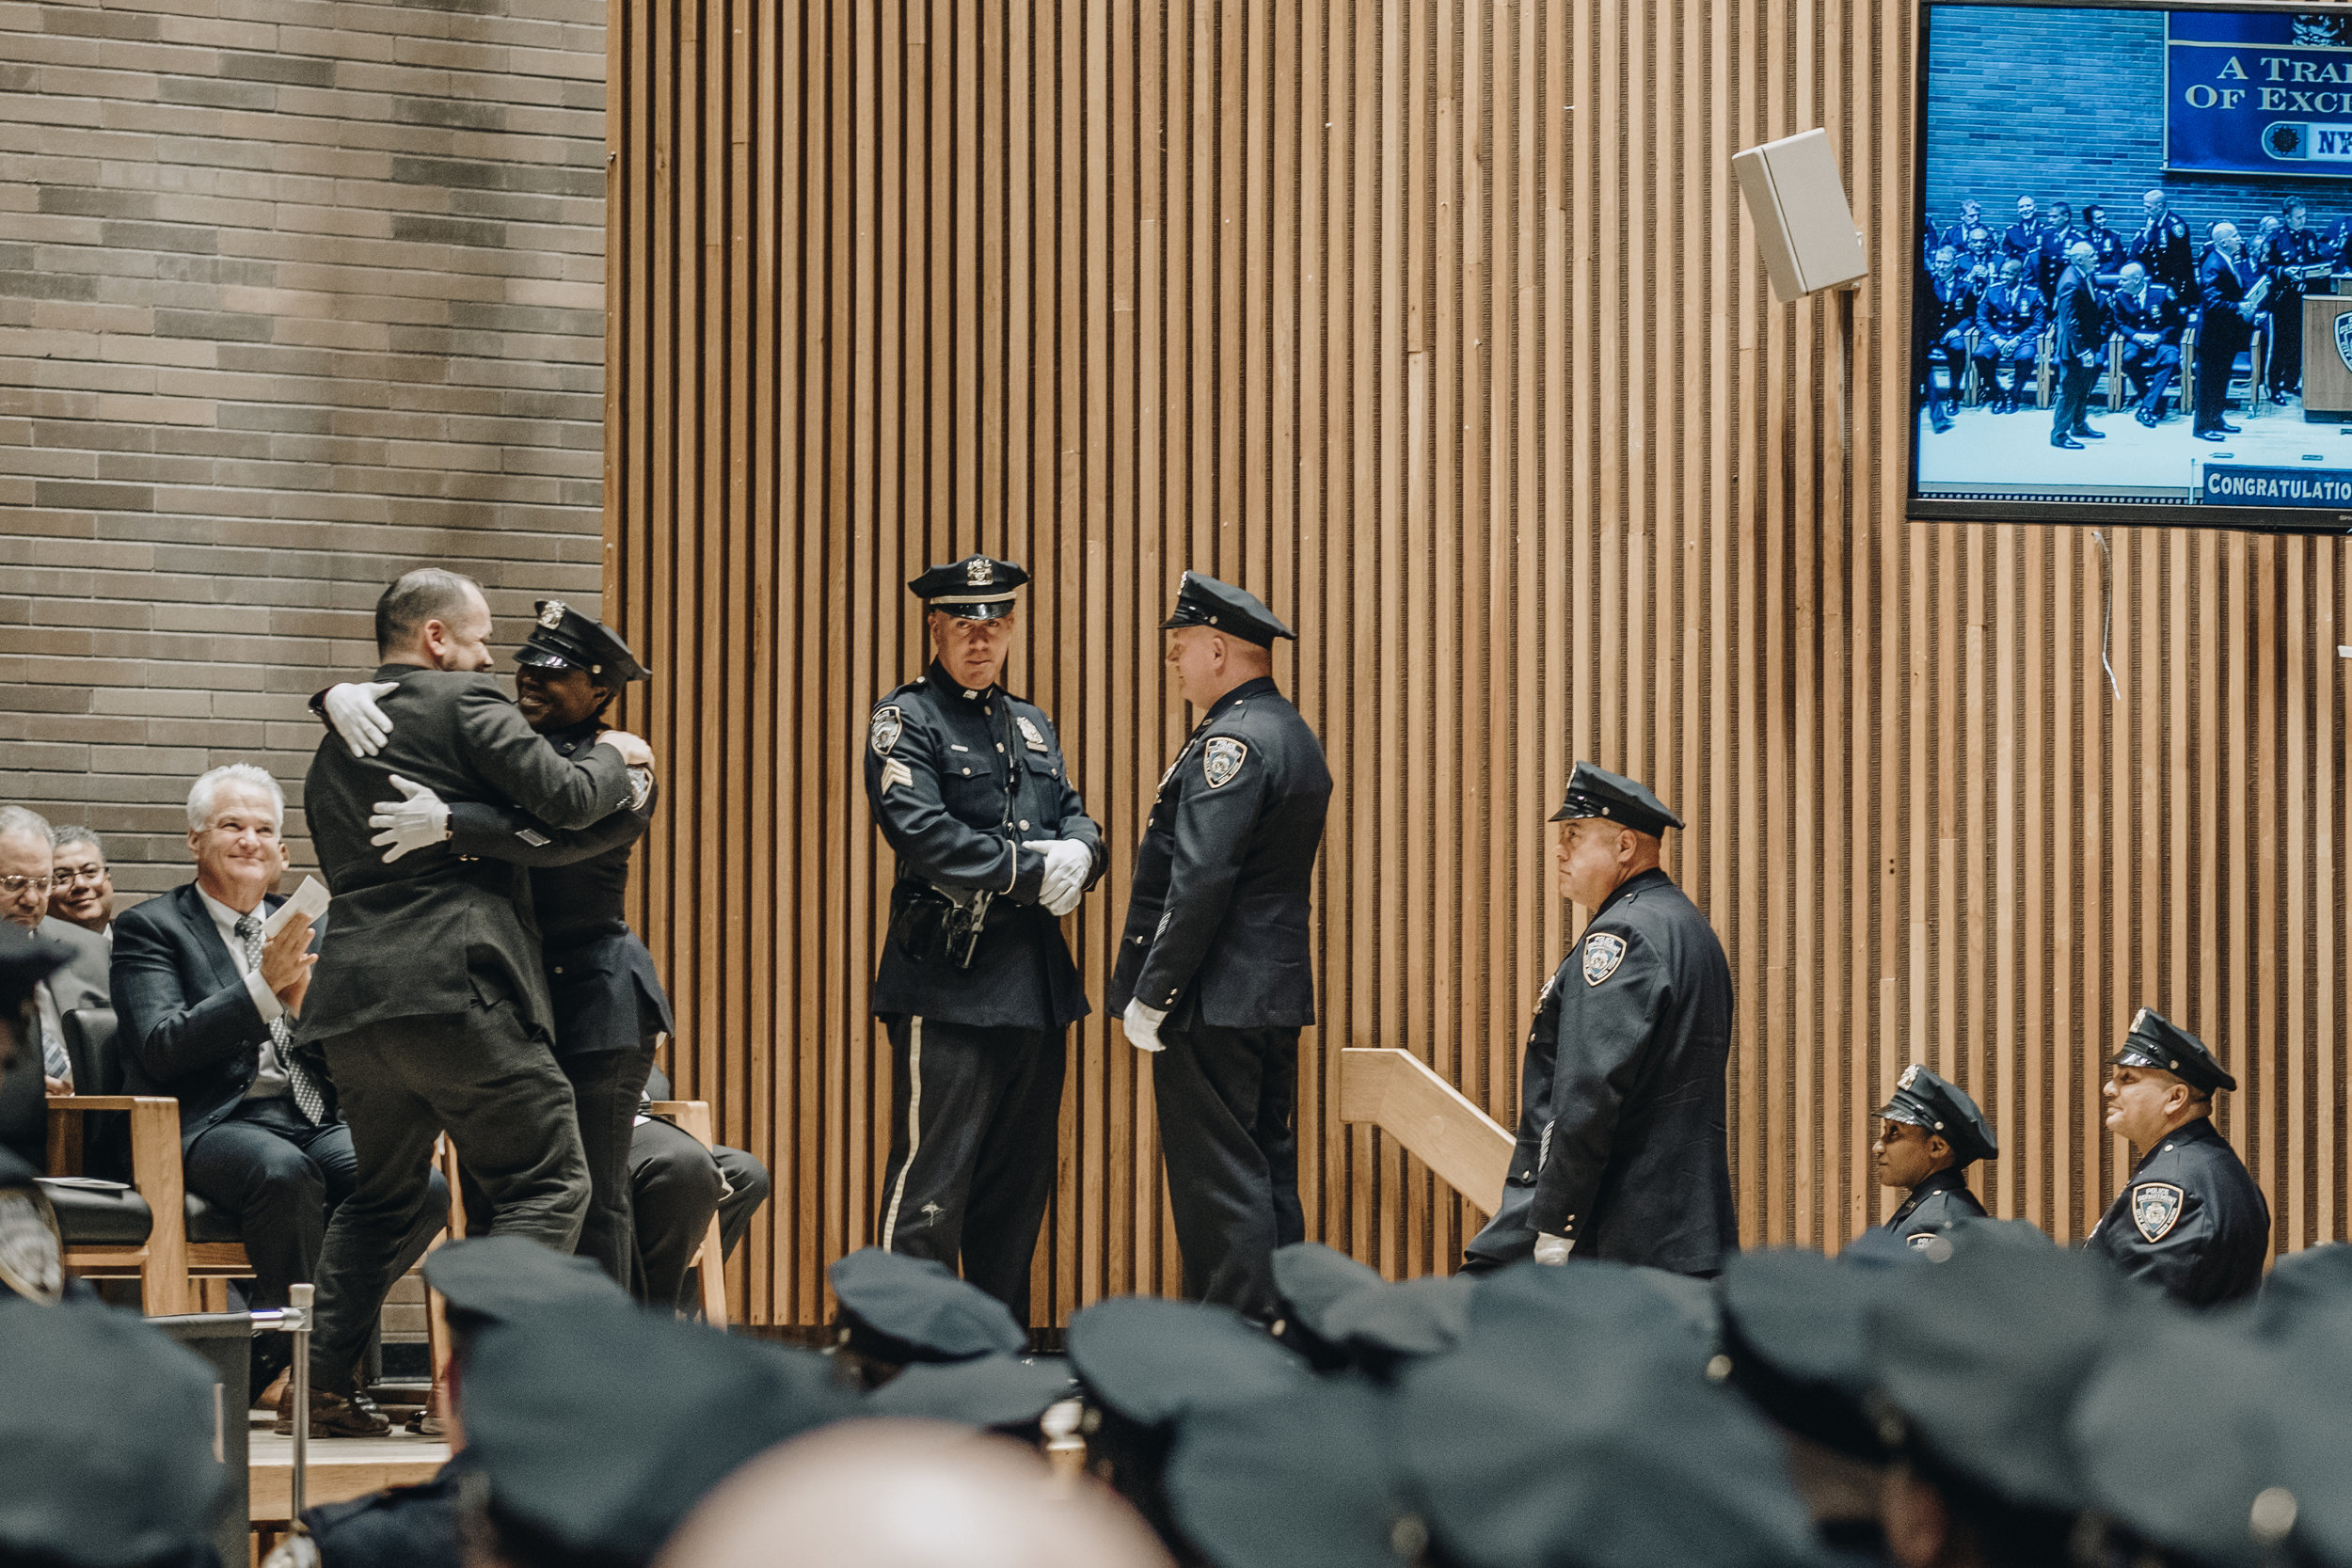 NYPD_Promotions-40.jpg